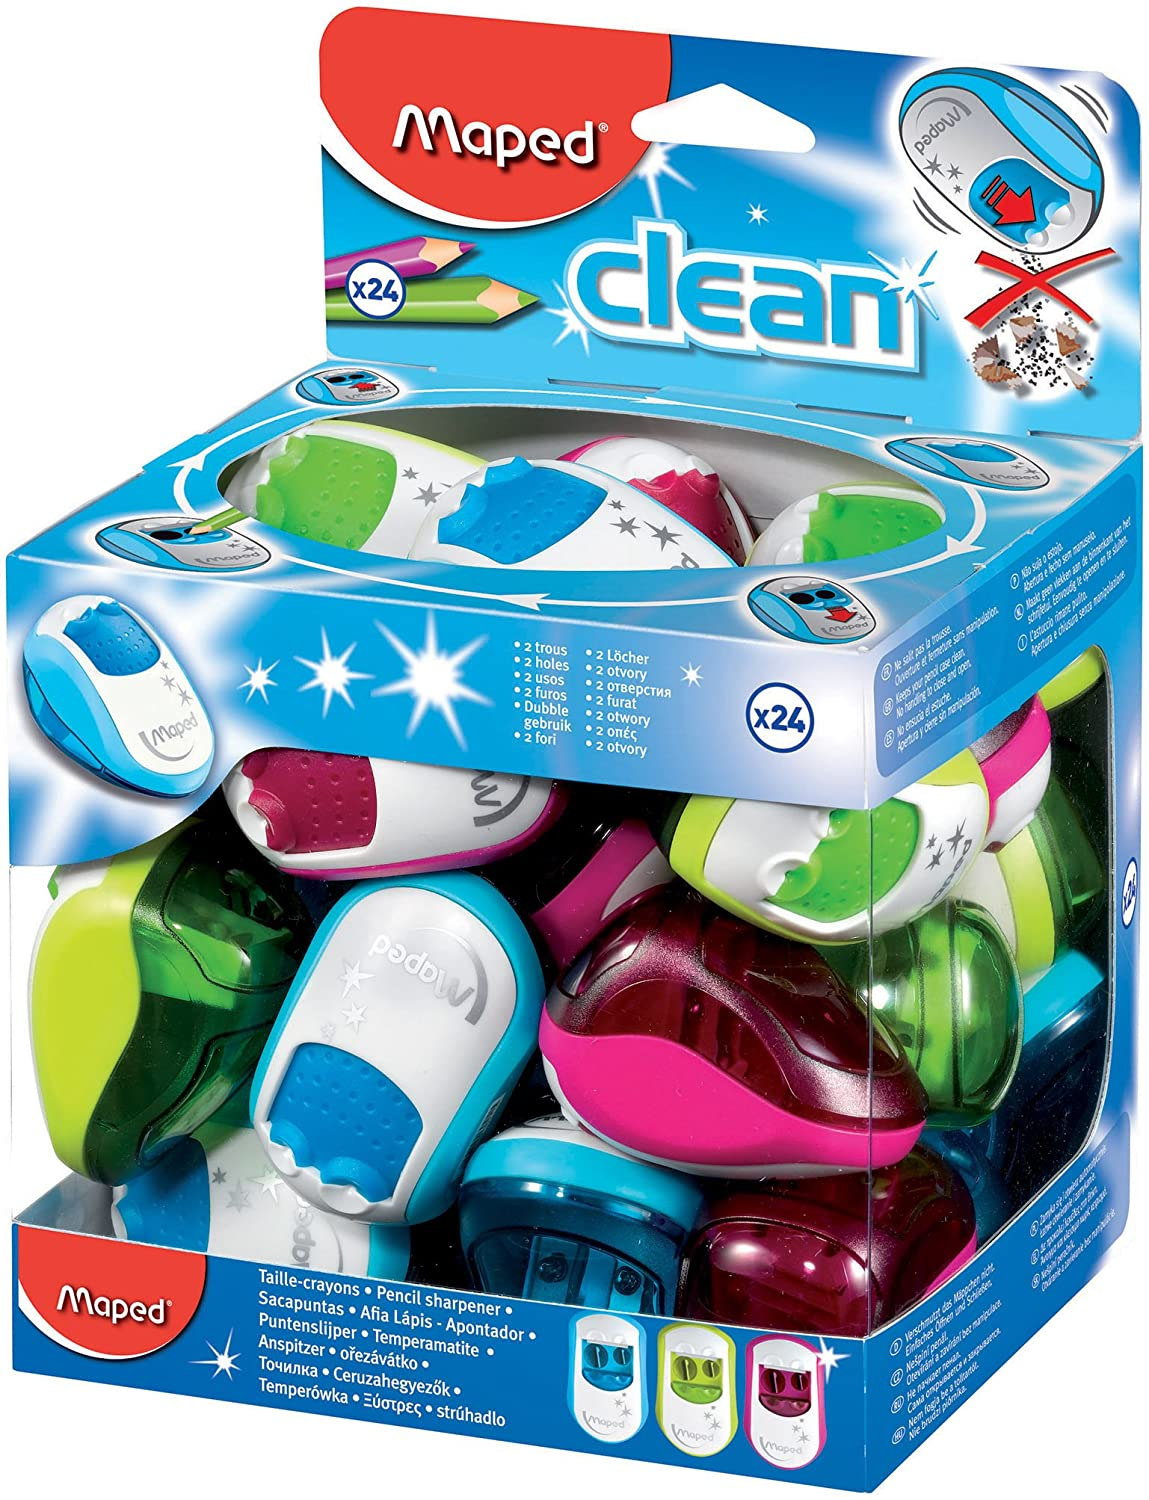 Maped Clean 2 Hole Canister Pencil Sharpener (Box of 24 in Assorted Colours) 030211